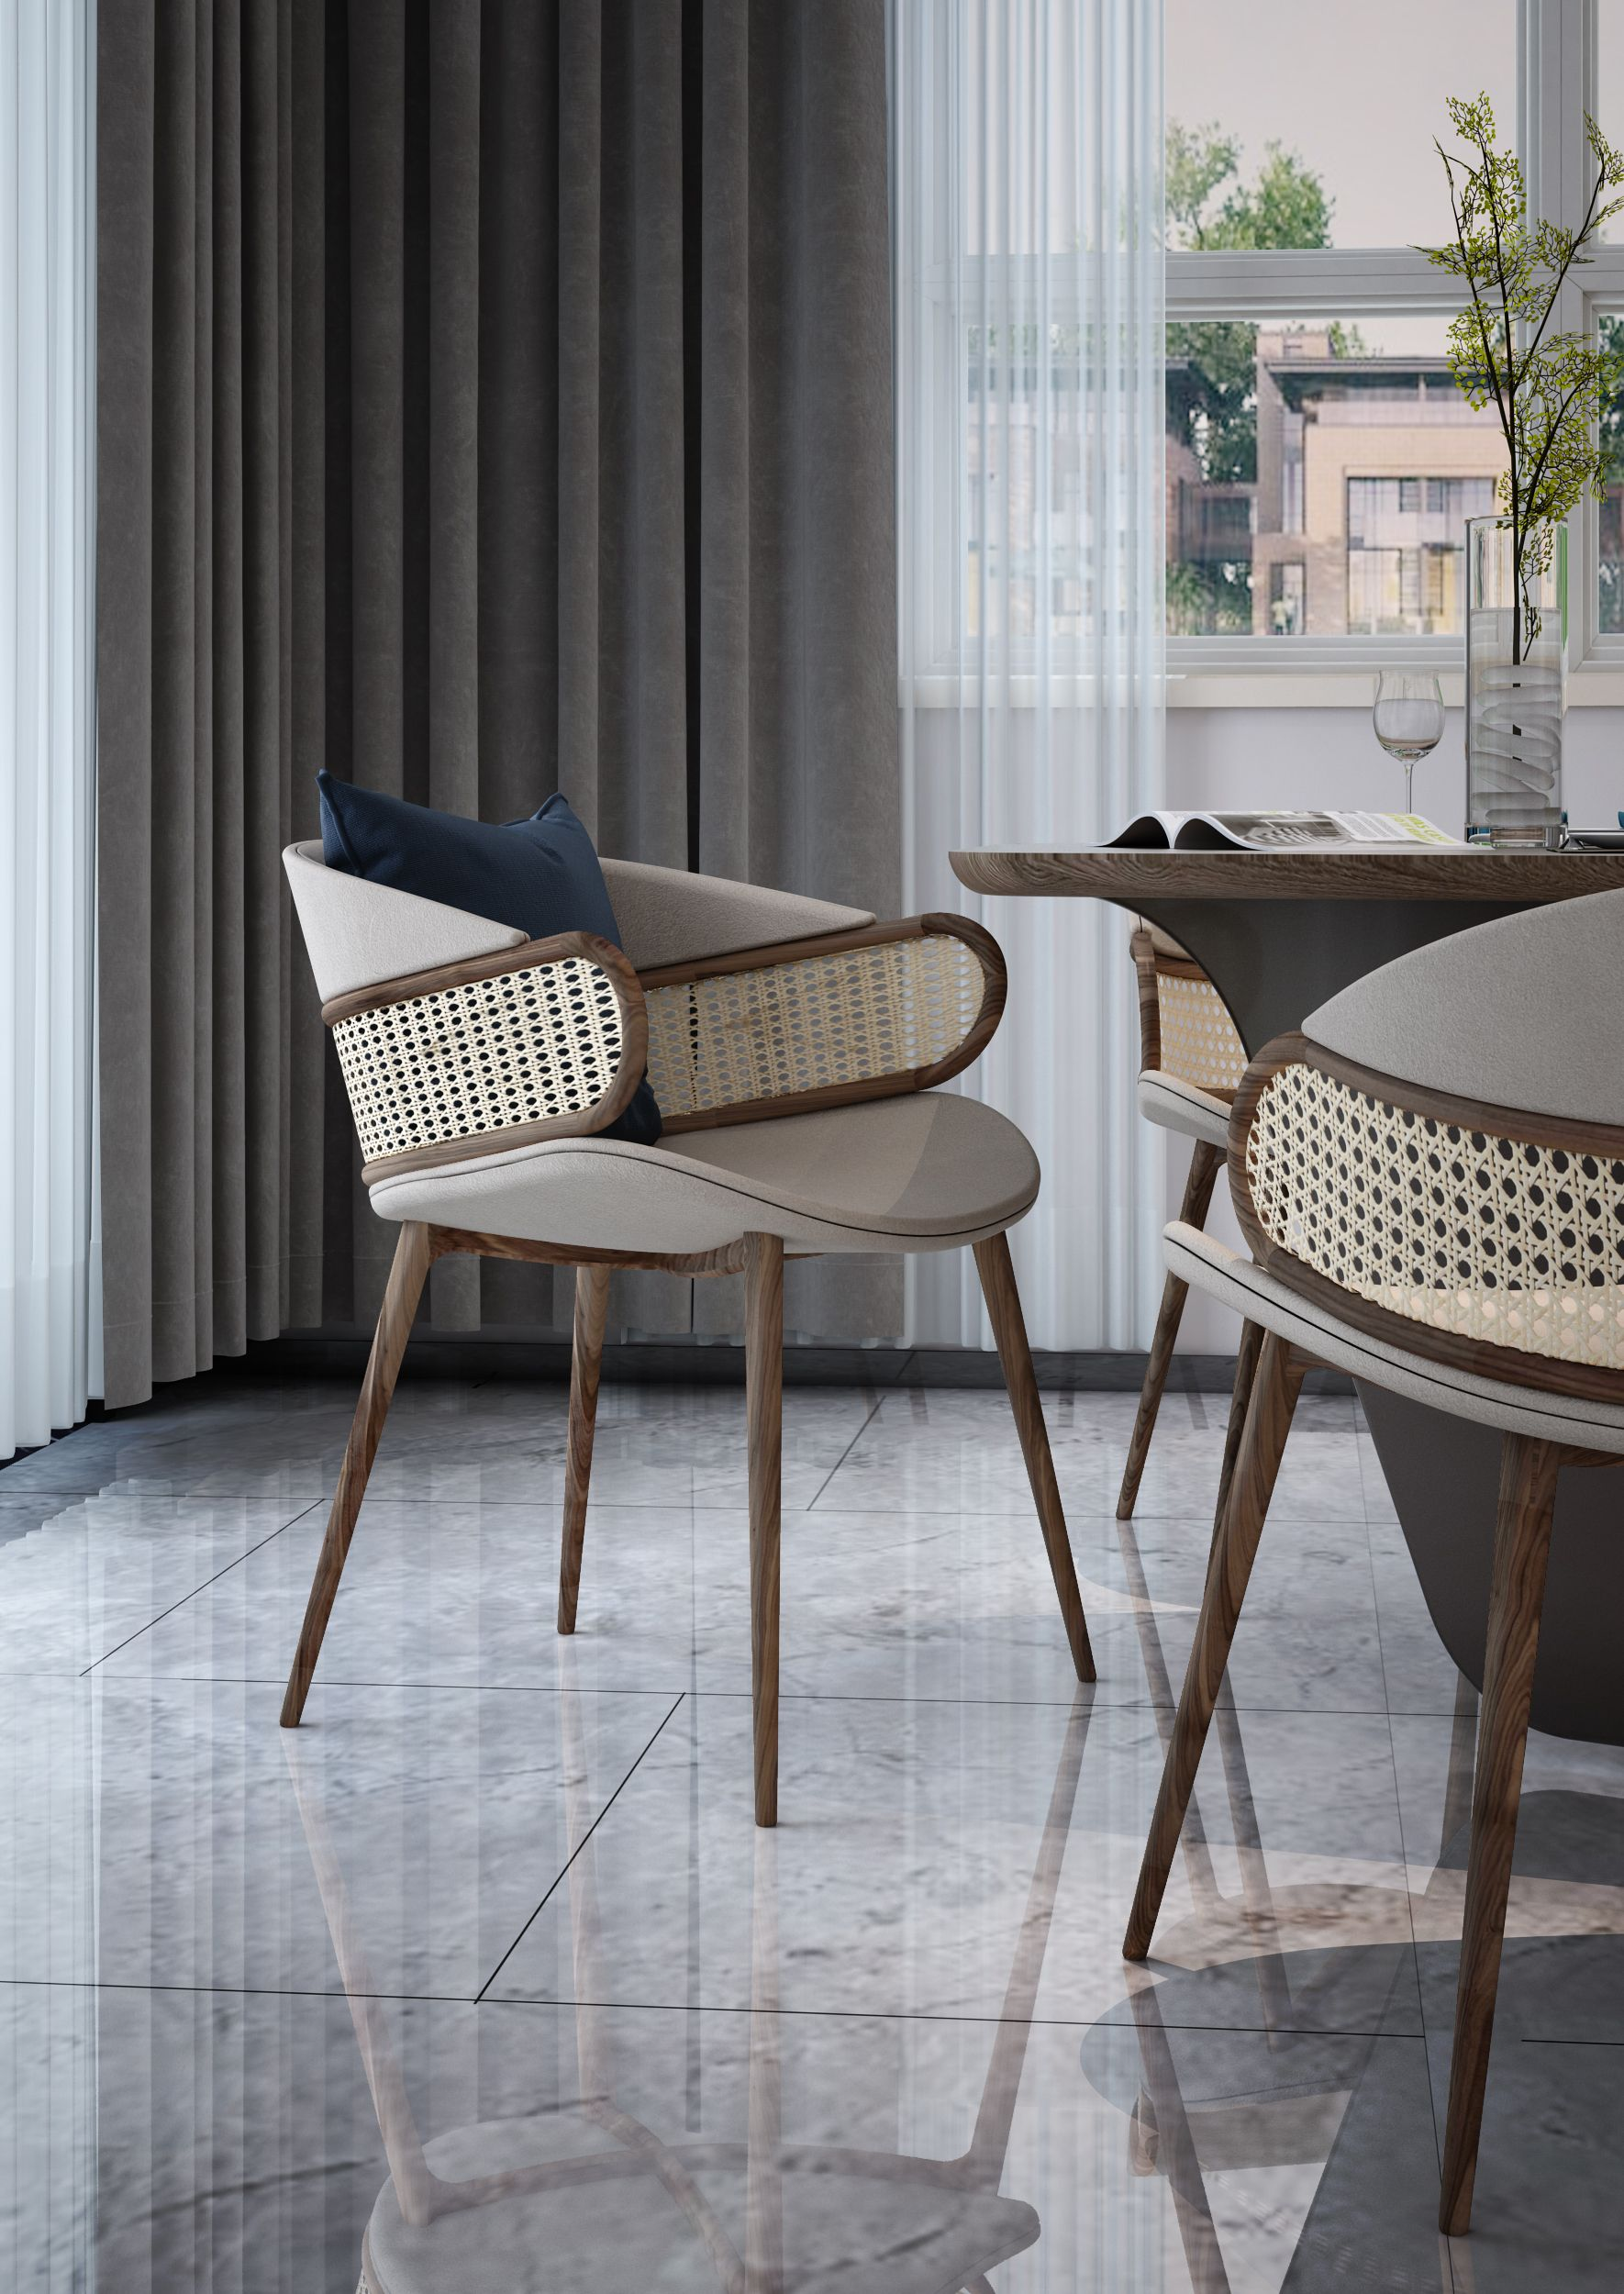 To achieve a luxurious and sophisticated environment there is some inspirations and ideas of contemporary chairs designed by Alma de Luce. This is the most perfect choice to achieve absolute perfection for your home décor. #almadeluce #contemporarychairideas #chairinspiration #exclusivechairs #modernchair #diningchair #luxurychair #inspirationfurniture #luxurydiningroom #moderndiningroom #woodchair #metallicchair #designchairs #uniquedesign #stunningchairs #organicchair #homedecorchair #chairs